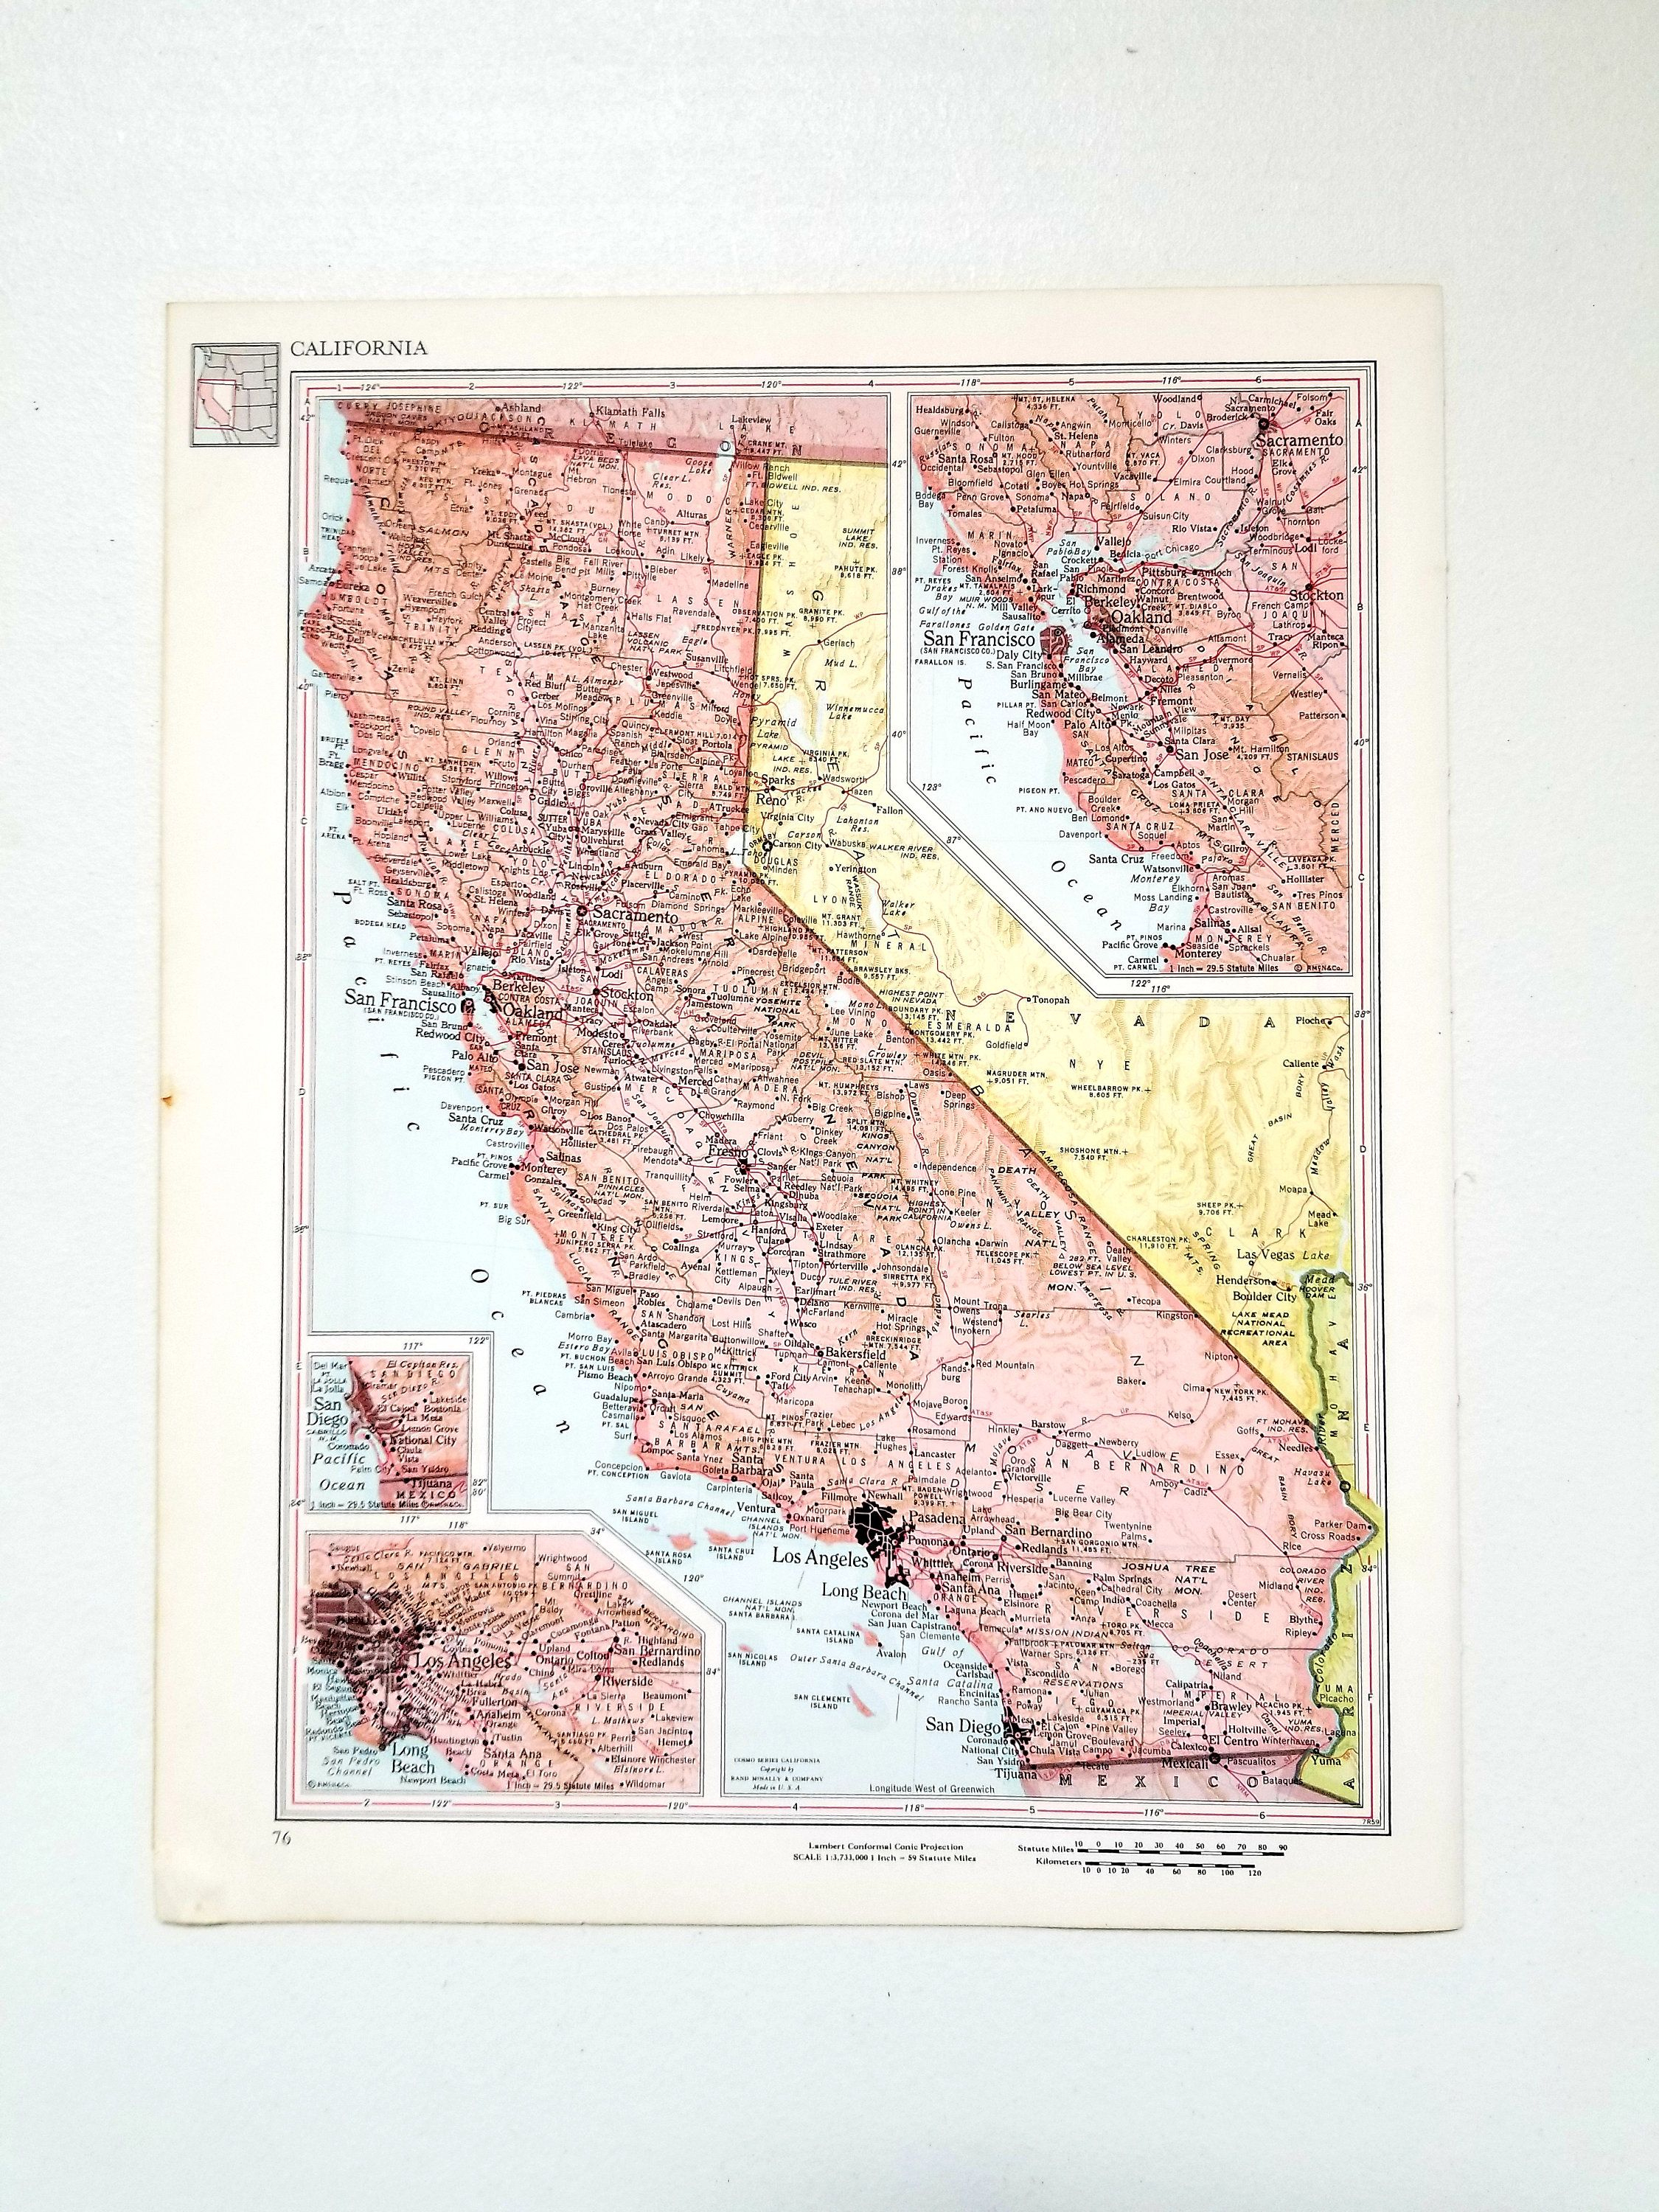 1960 California Map / Vintage Map Wall Art / Office Decor - California Map Wall Art